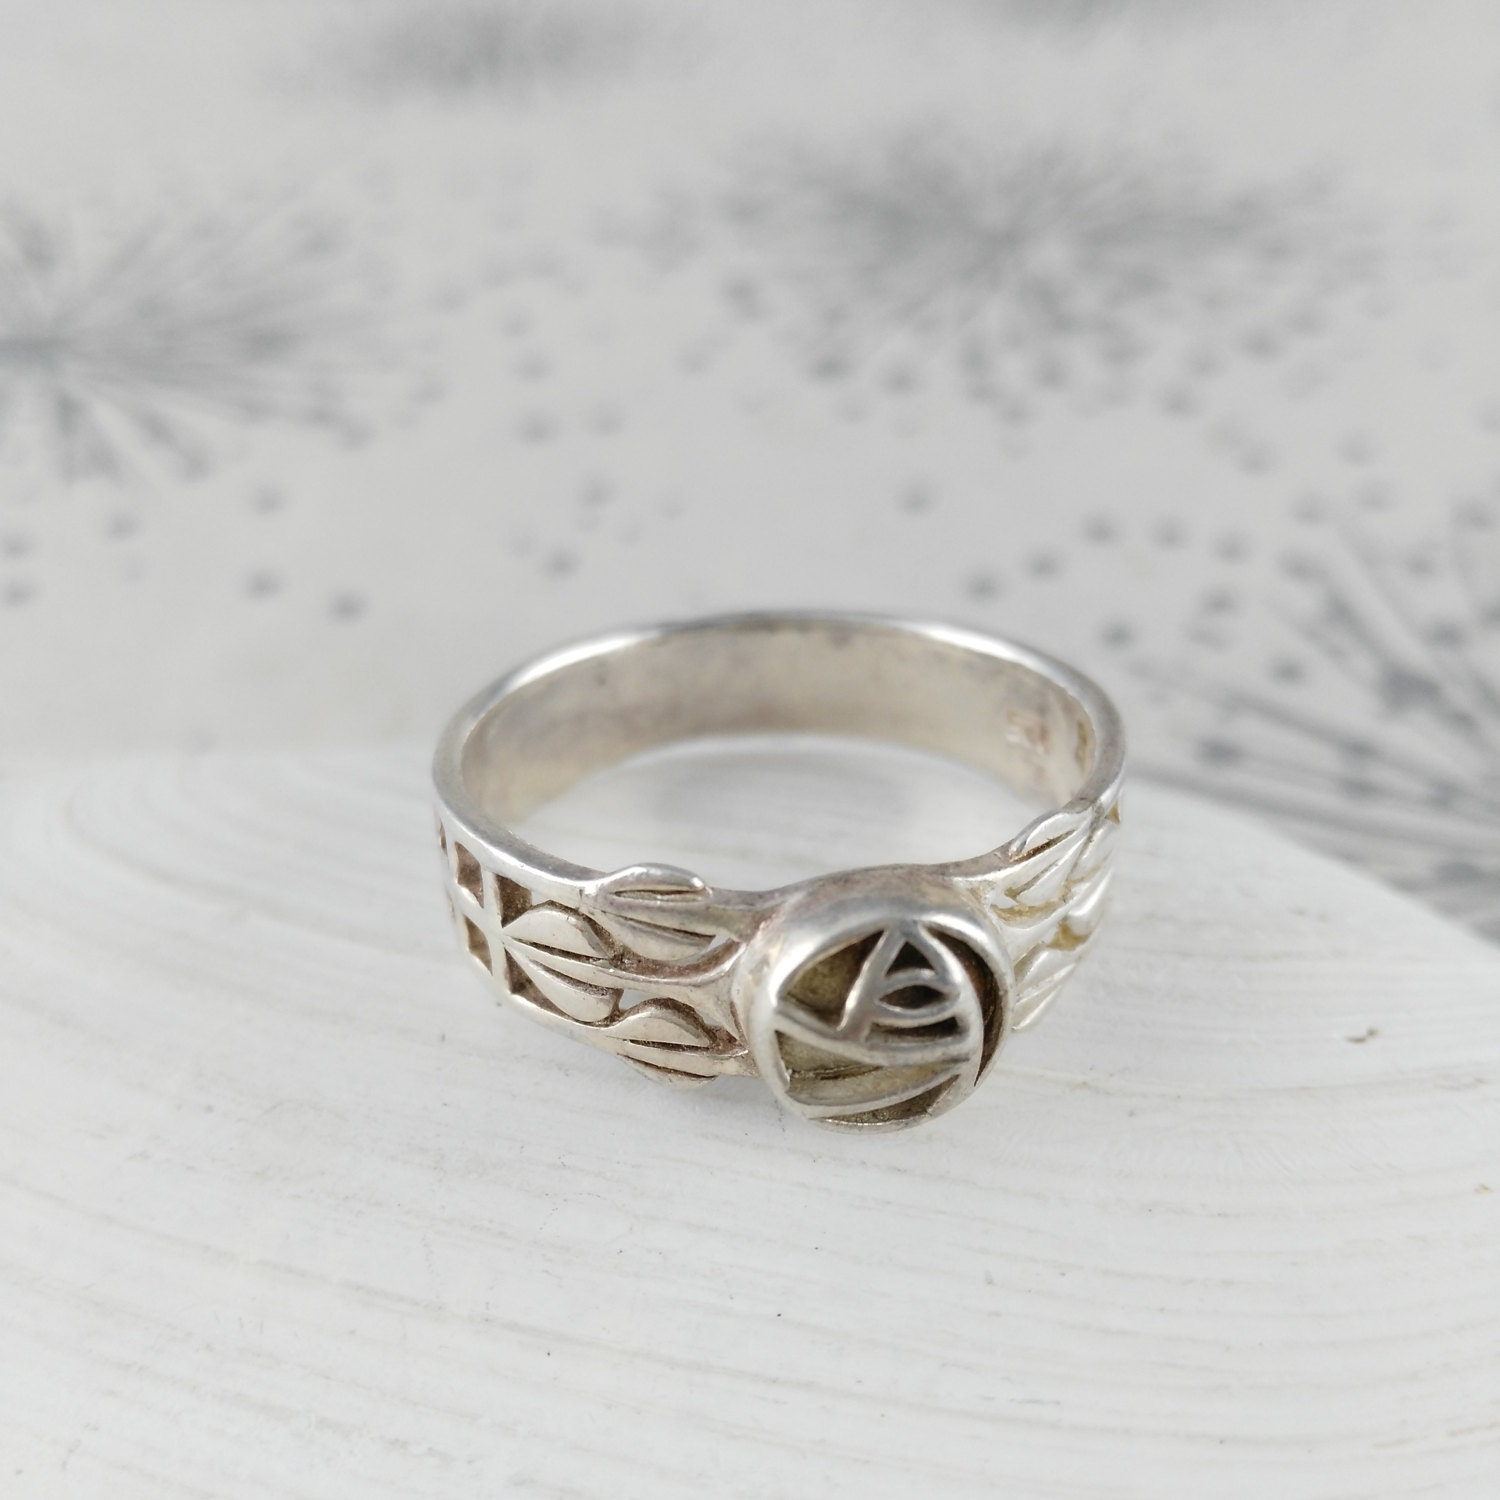 Vintage 925 Silver Glasgow Rose Ring  Anniversary Gift  Gift Her Woman Lady    925 Silver Ring  CRM style Ring